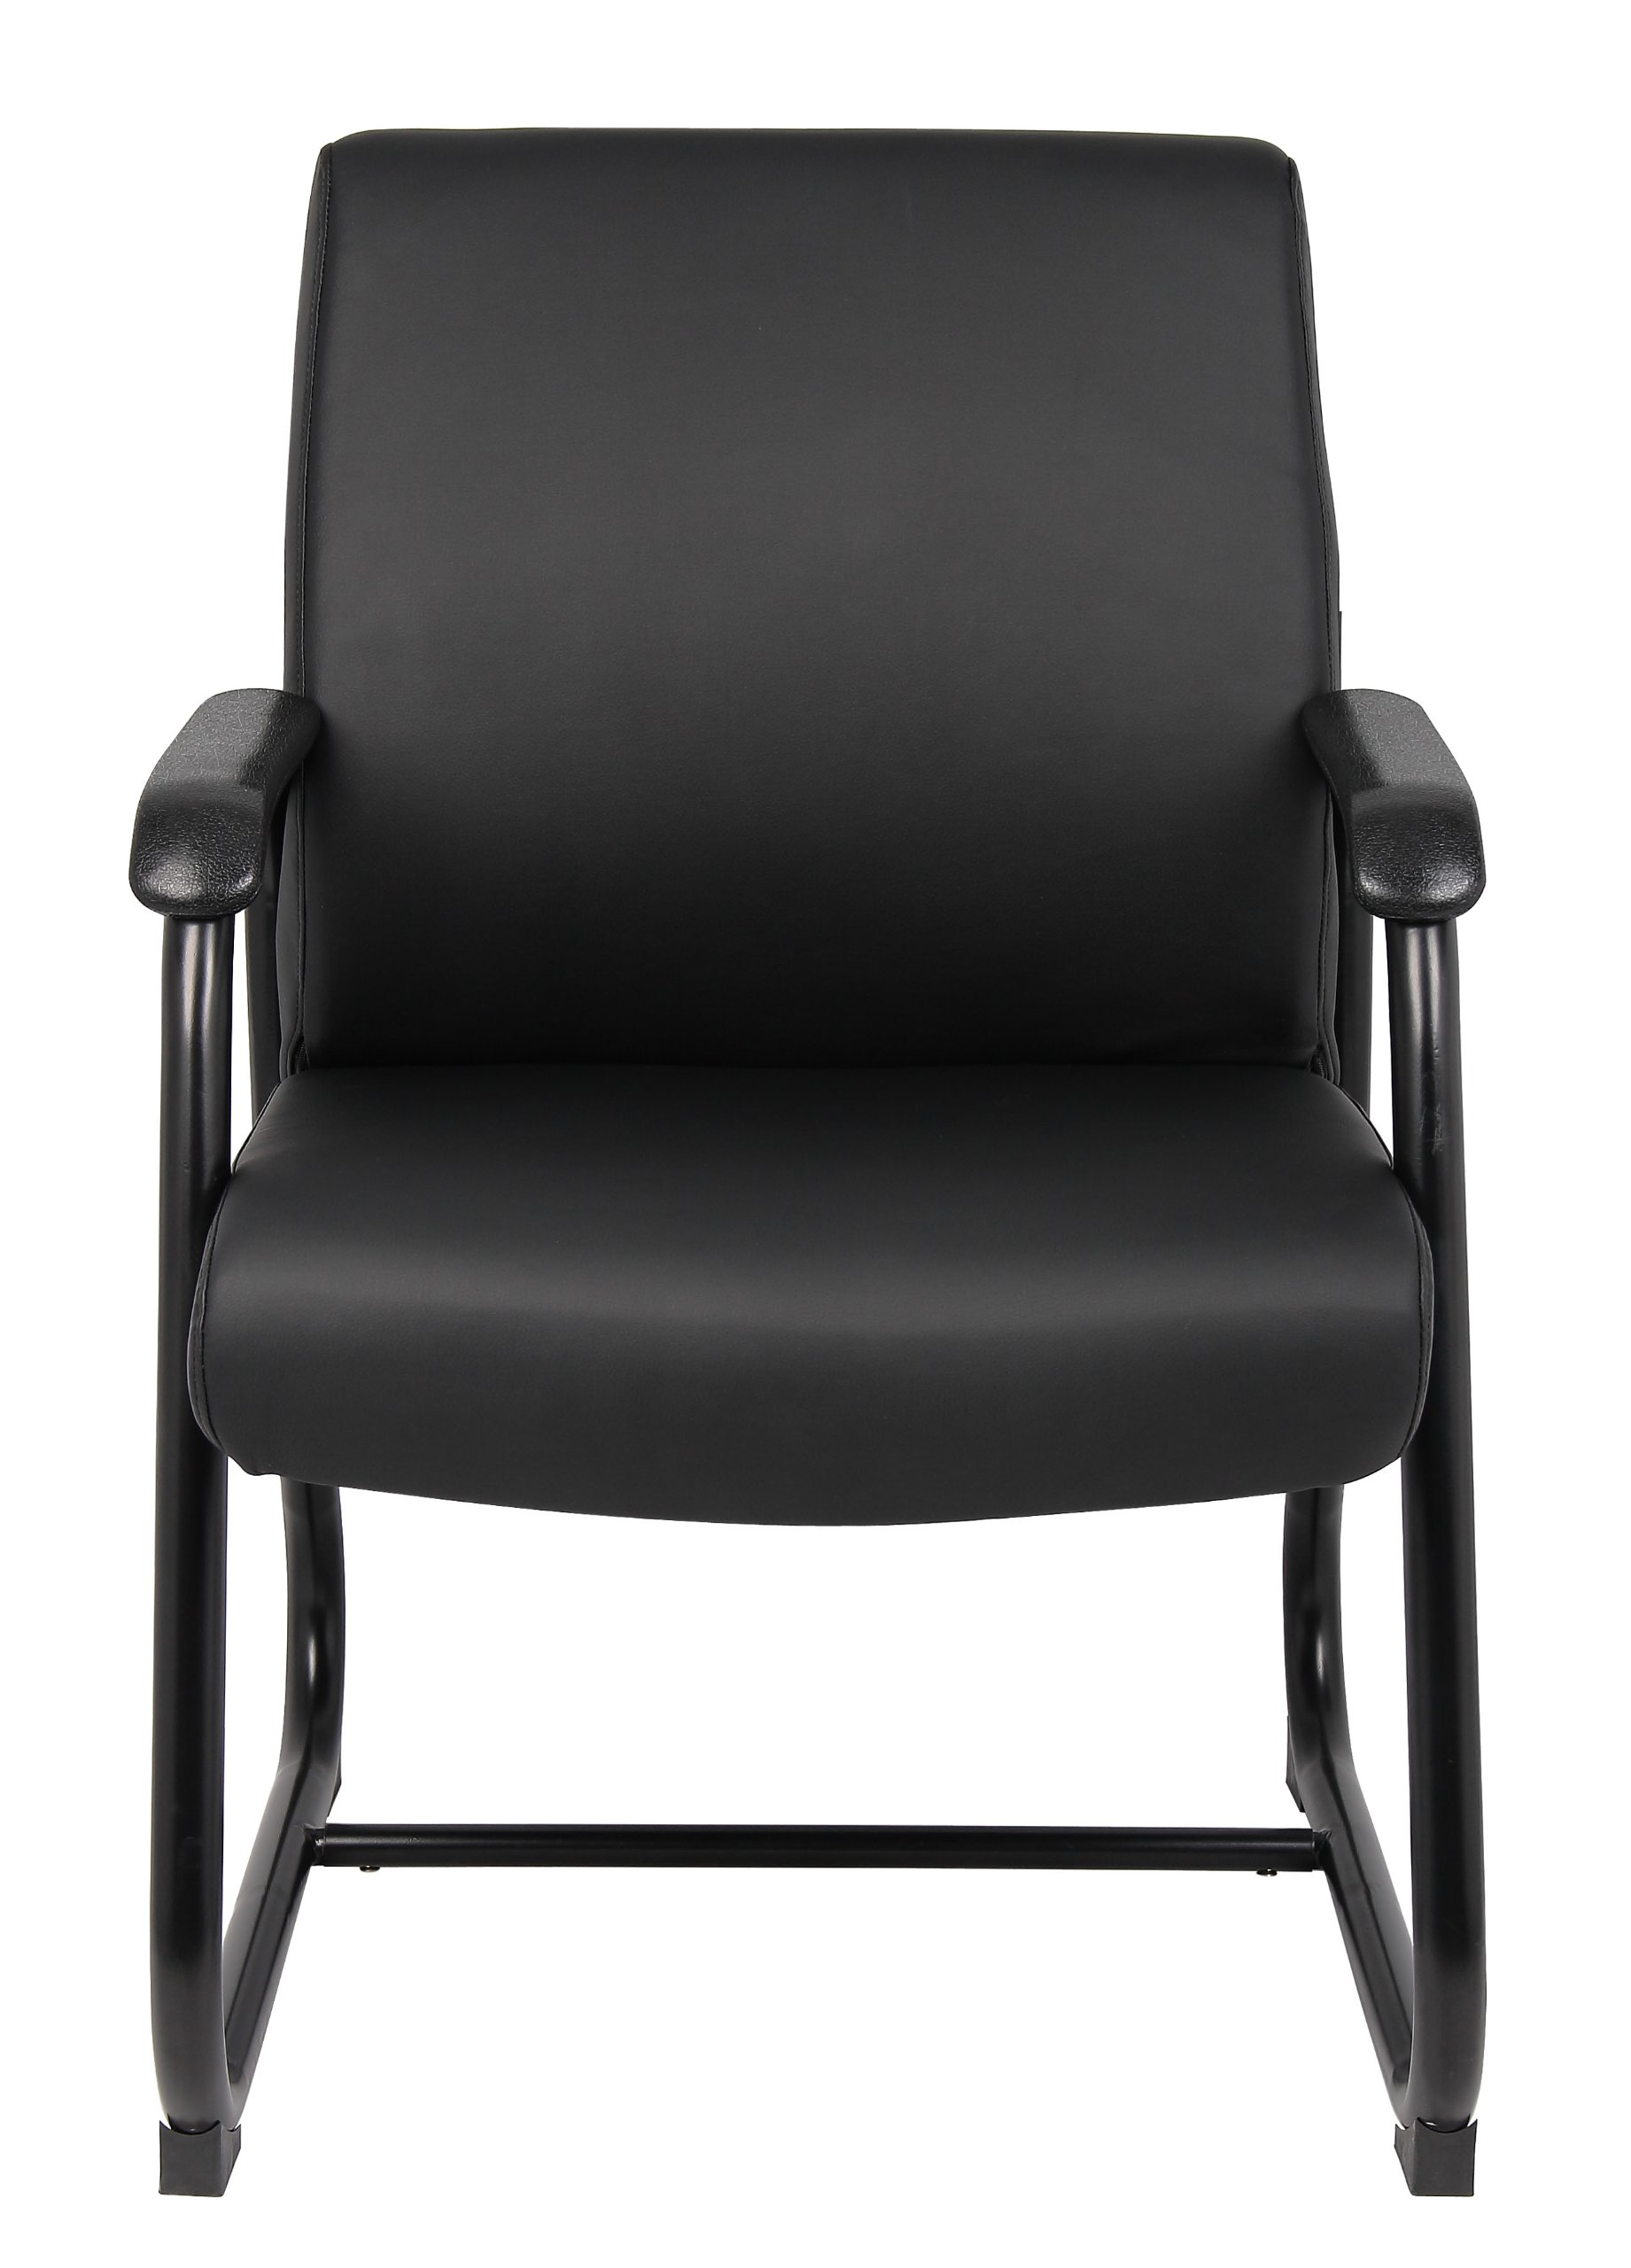 Boss Office Products B709 Heavy Duty Caressoft Guest Chair in Black by Boss Office Products (Image #3)